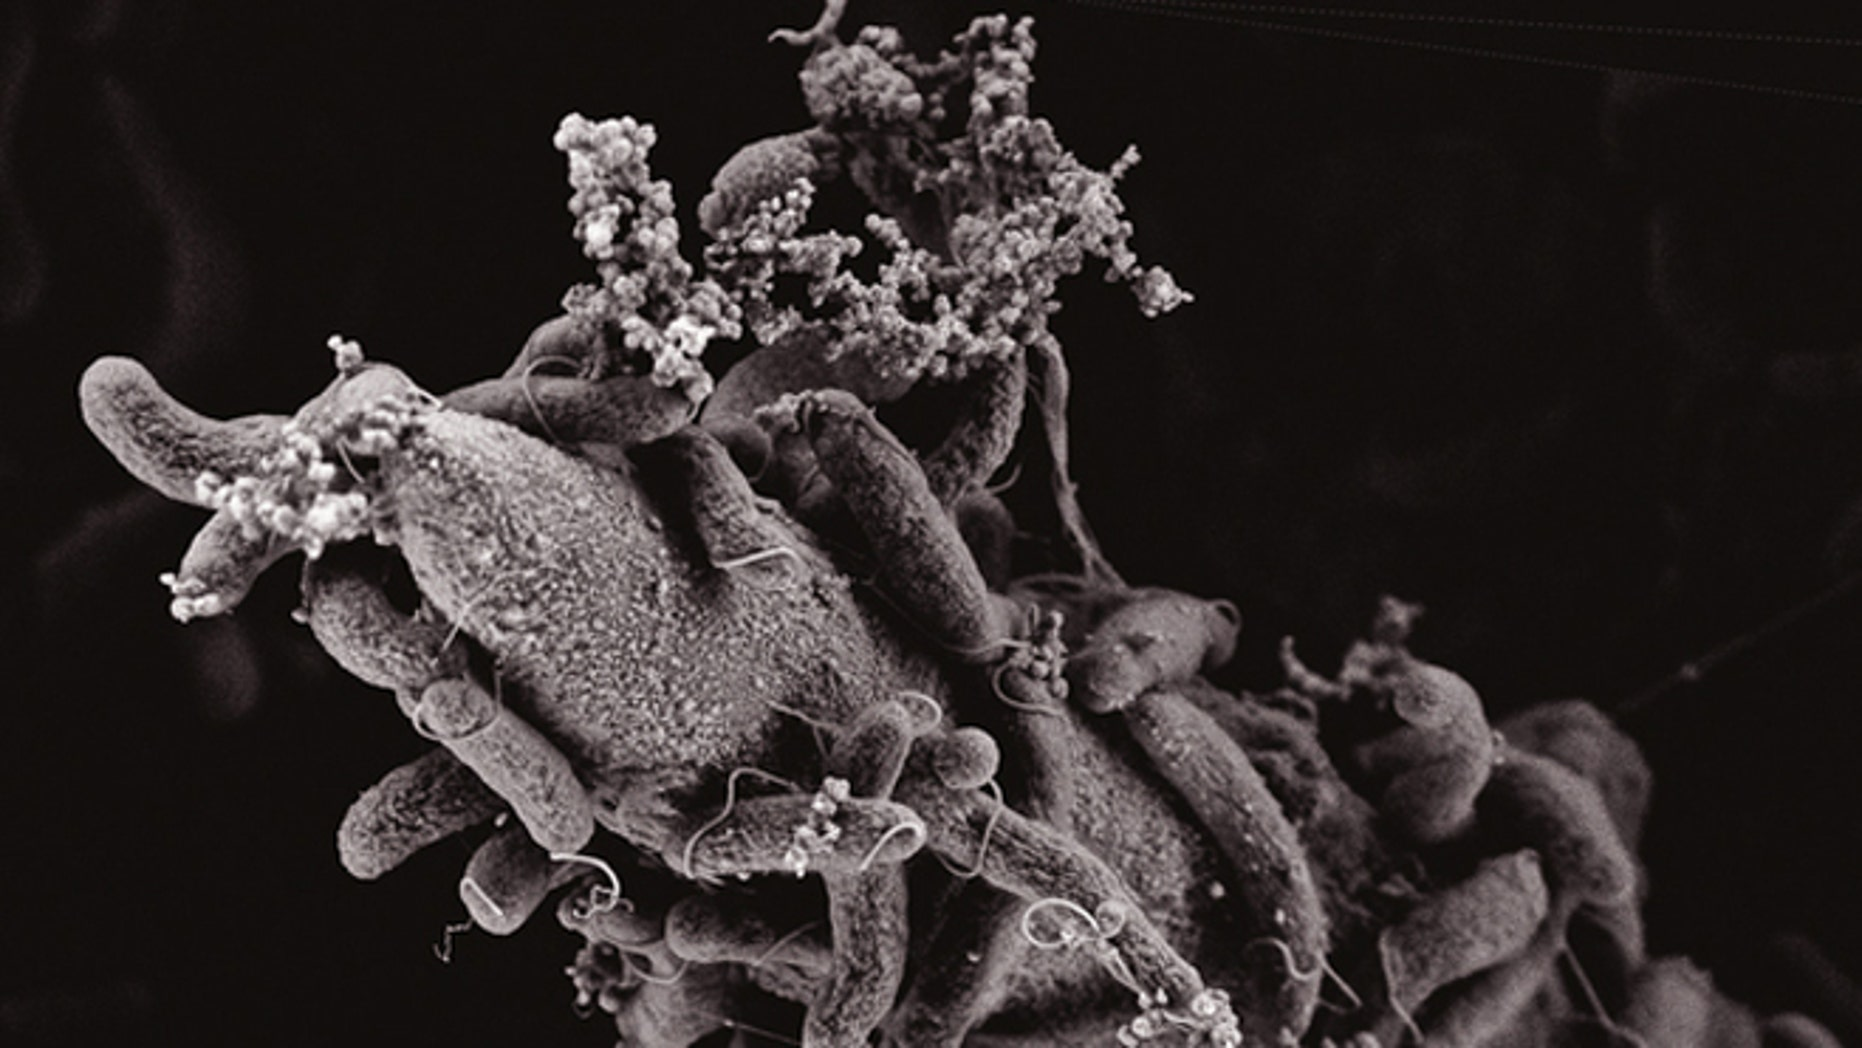 This electron scanning microscopy image show Vibrio cholerae bacteria attached to a chitin surface.